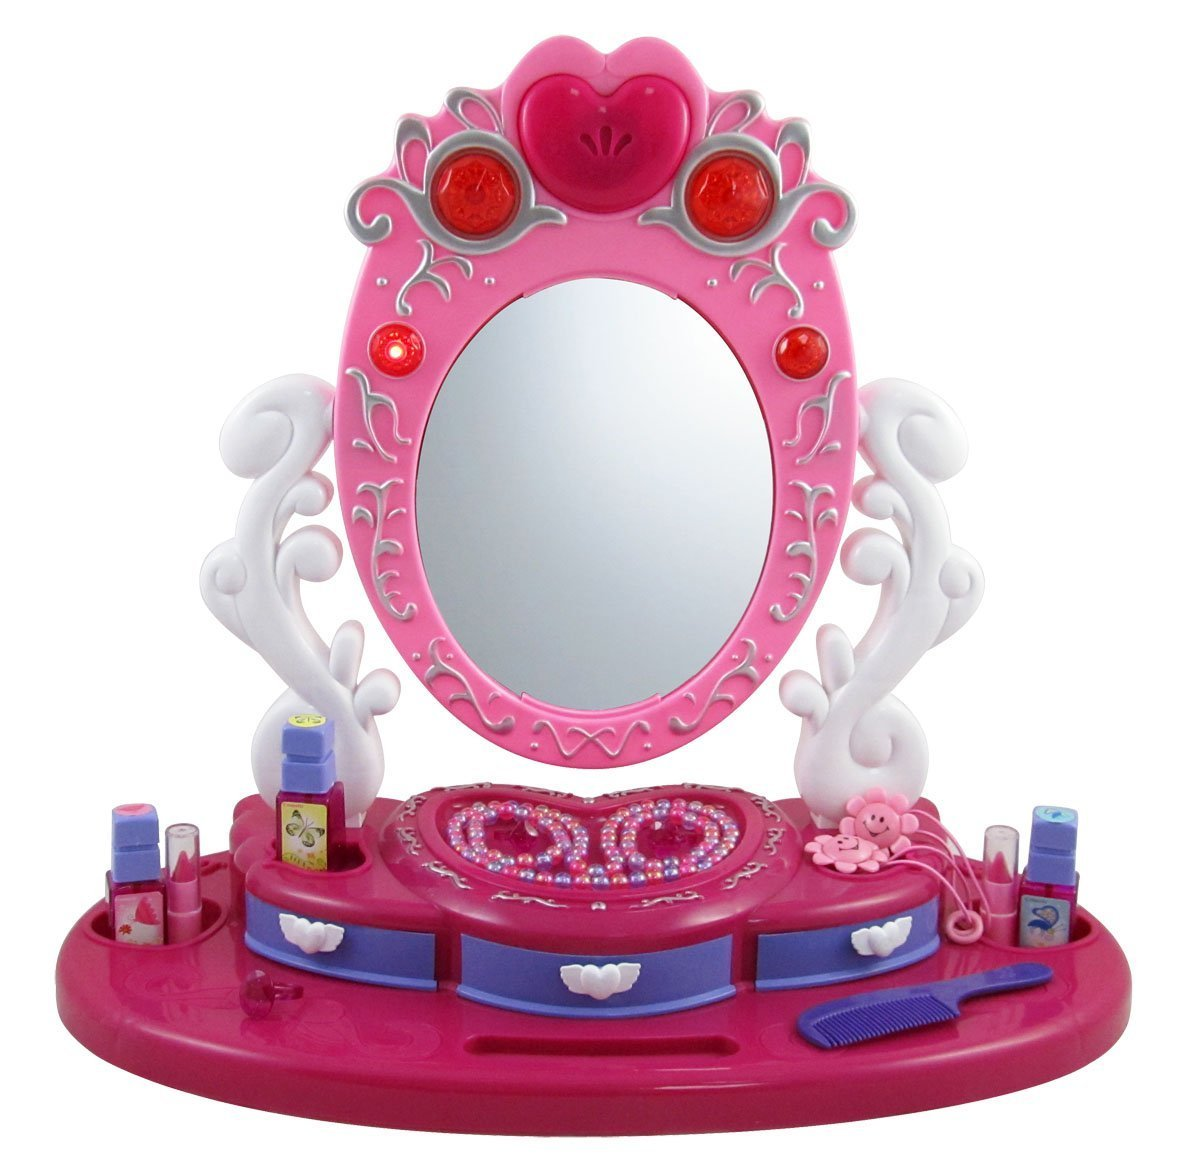 FunkyBuys® Girls Princess Glamour Mirror Dressing Vanity Table Beauty Play  Set Light & Music Toy: Amazon.co.uk: Toys & Games